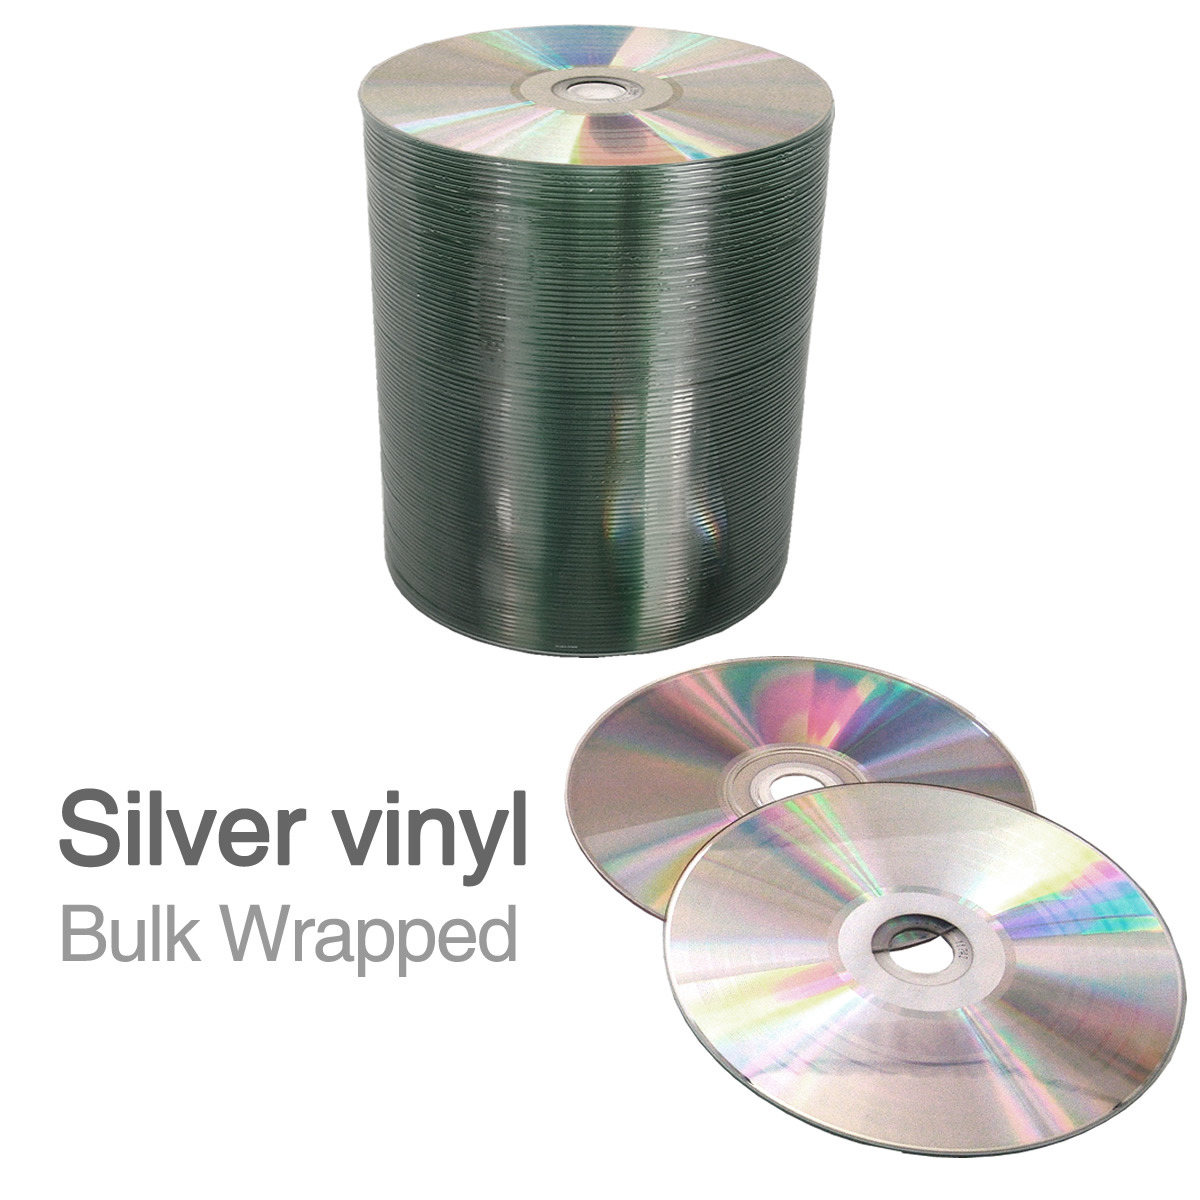 Blank 12cm Silver Vinyl Cd R 700mb Bulk Wrapped Retro